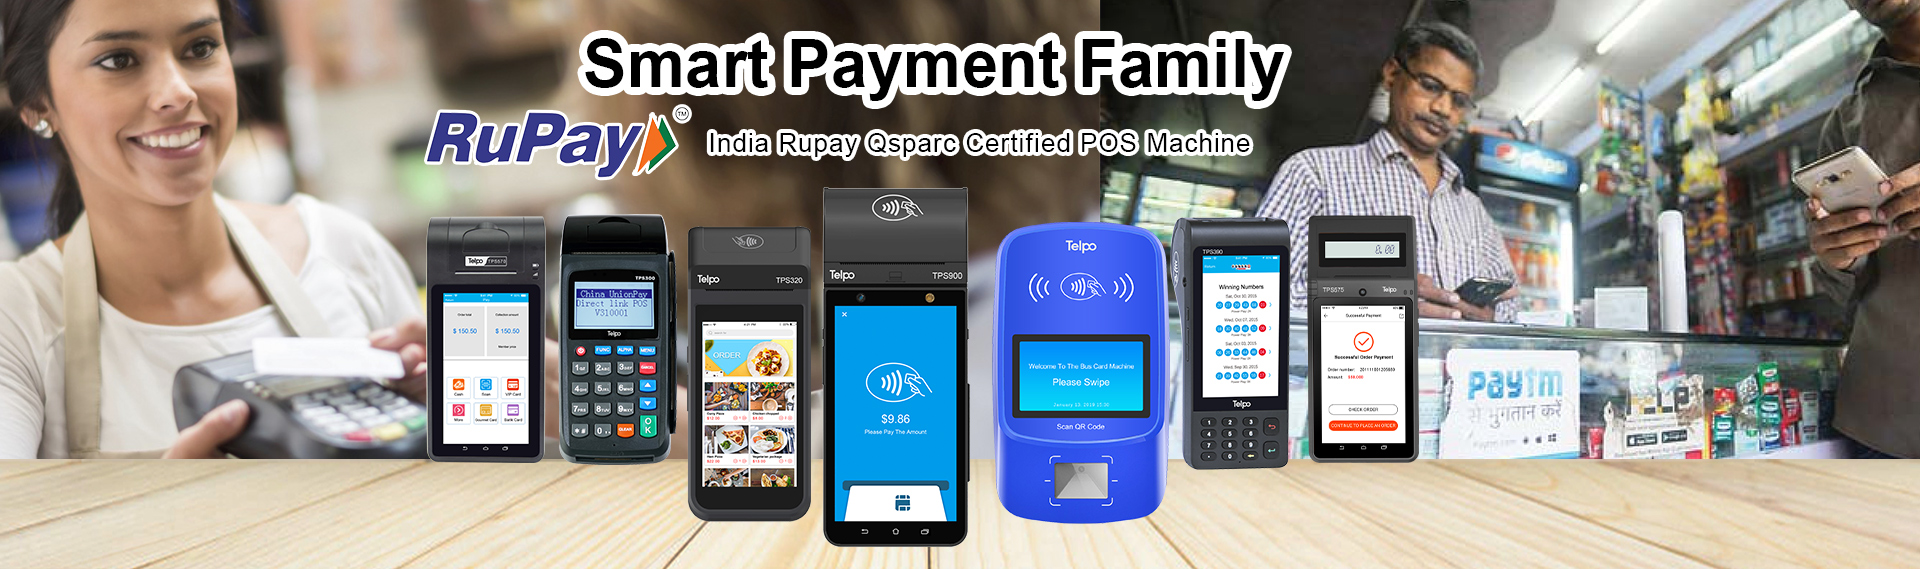 Telpo Smart Payment